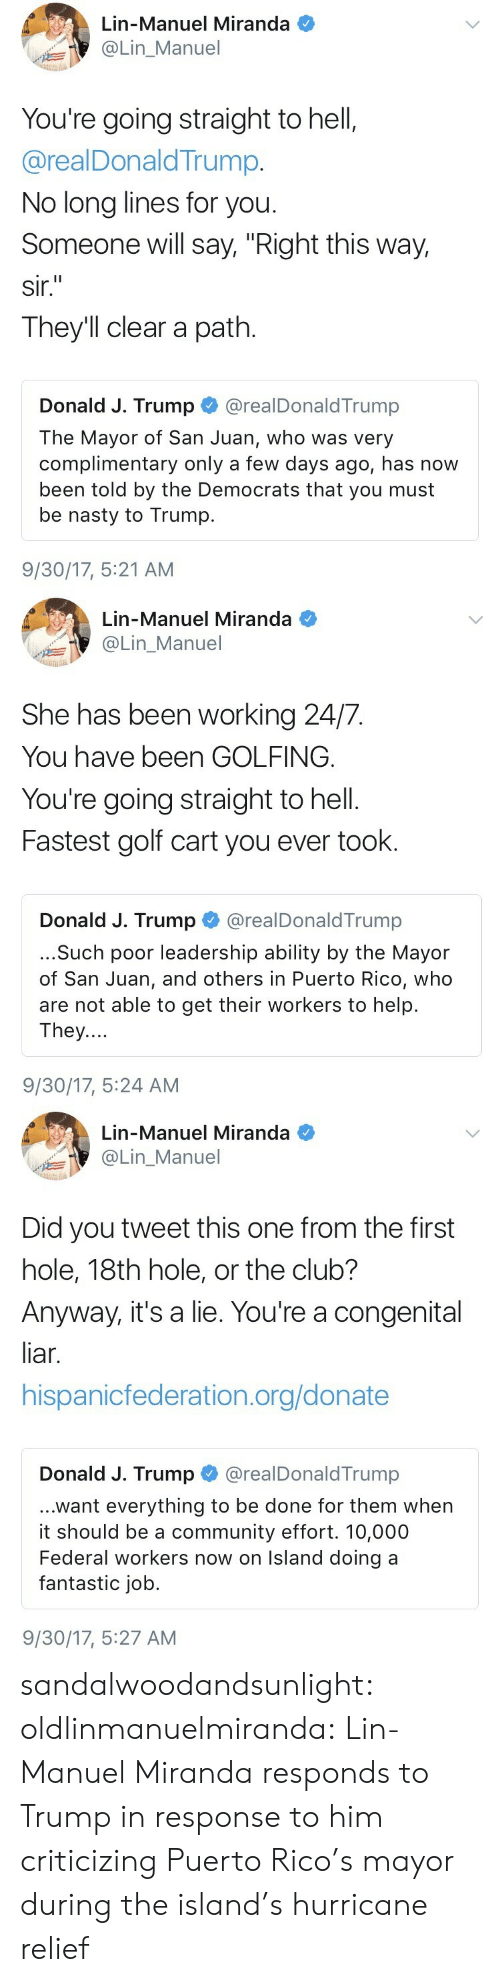 """Golfing: Lin-Manuel Miranda  @Lin_Manuel  You're going straight to hell,  @realDonaldTrump.  No long lines for you  Someone will say, """"Right this way,  sir.  They'll clear a path.  Donald J. Trump @realDonaldTrump  The Mayor of San Juan, who was very  complimentary only a few days ago, has now  been told by the Democrats that you must  be nasty to Trump.  9/30/17, 5:21 AM   Lin-Manuel Miranda  OLin_Manuel  She has been working 24/7.  You have been GOLFING.  You're going straight to hell.  Fastest golf cart you ever took.  Donald J. Trump@realDonaldTrump  ...Such poor leadership ability by the Mayor  of San Juan, and others in Puerto Rico, who  are not able to get their workers to help.  They....  9/30/17, 5:24 AM   Lin-Manuel Miranda  Lin_Manuel  Did you tweet this one from the first  hole, 18th hole, or the club?  Anyway, it's a lie. You're a congenital  liar.  hispanicfederation.org/donate  Donald J. Trump @realDonaldTrump  ...want everything to be done for them when  it should be a community effort. 10,000  Federal workers now on Island doing a  fantastic job.  9/30/17, 5:27 AM sandalwoodandsunlight:  oldlinmanuelmiranda: Lin-Manuel Miranda responds to Trump in response to him criticizing Puerto Rico's mayor during the island's hurricane relief"""